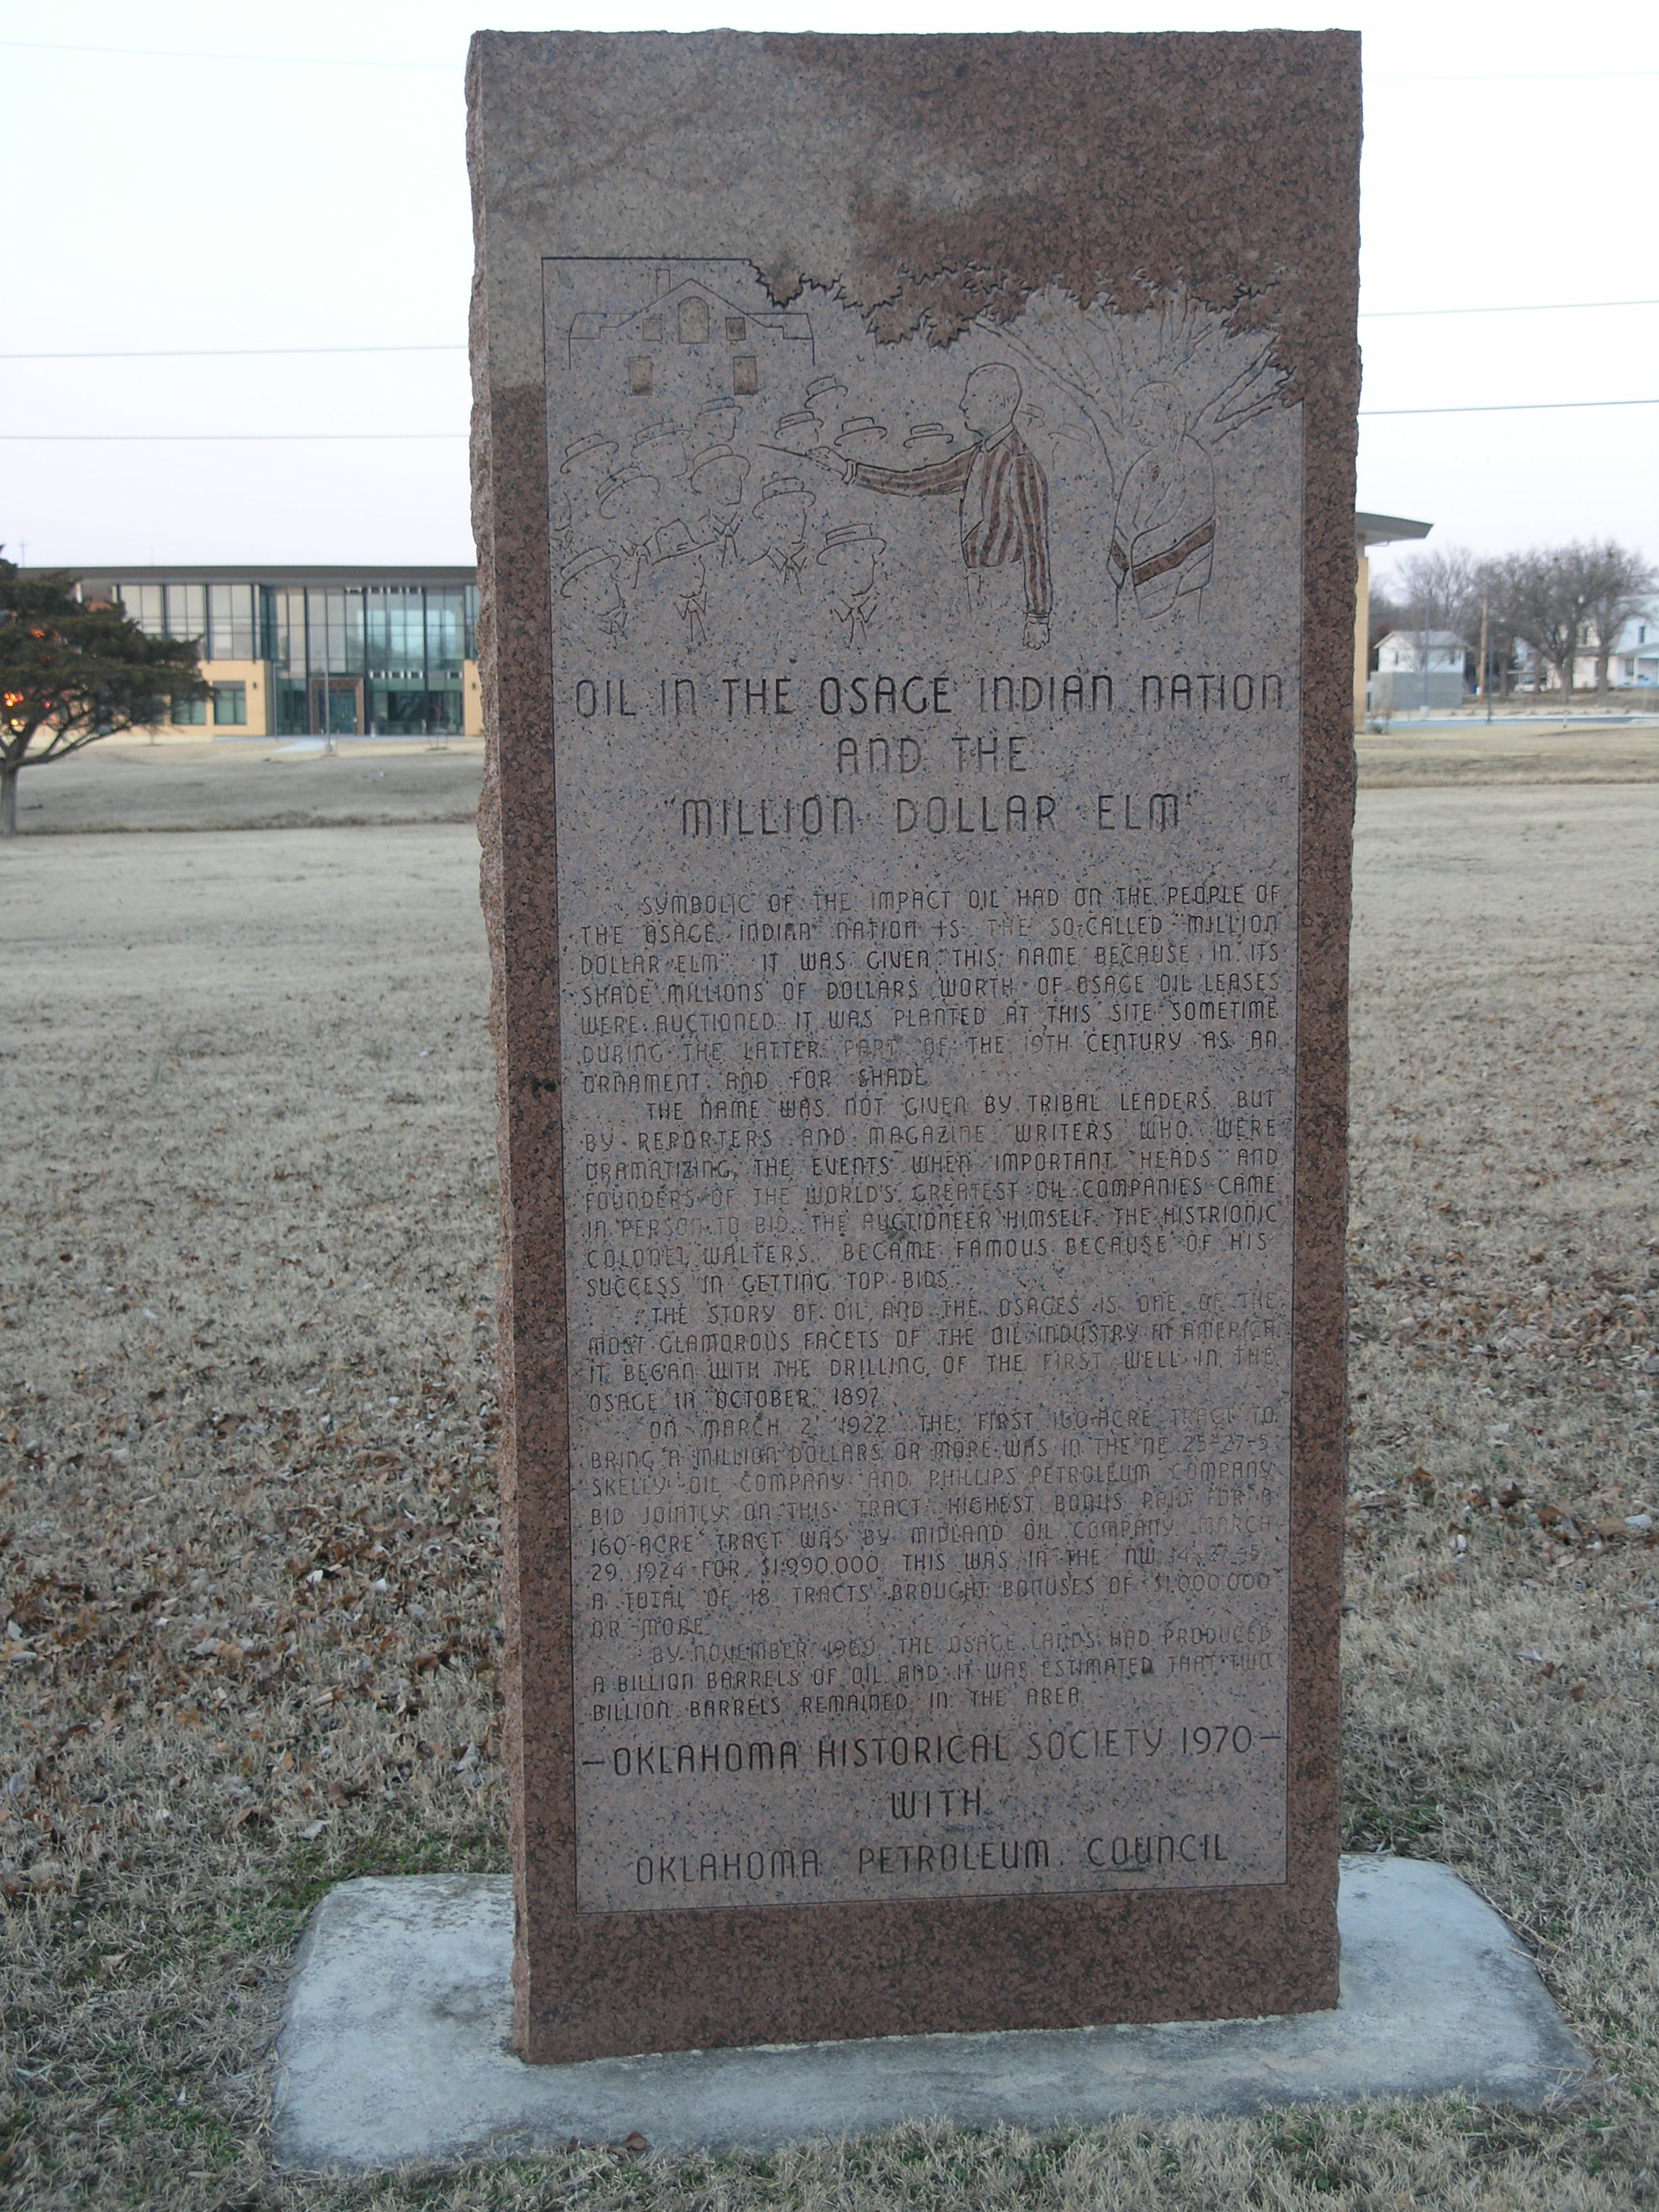 Exploring Oklahoma History: Oil in the Osage Indian Nation and the Million Dollar Elm